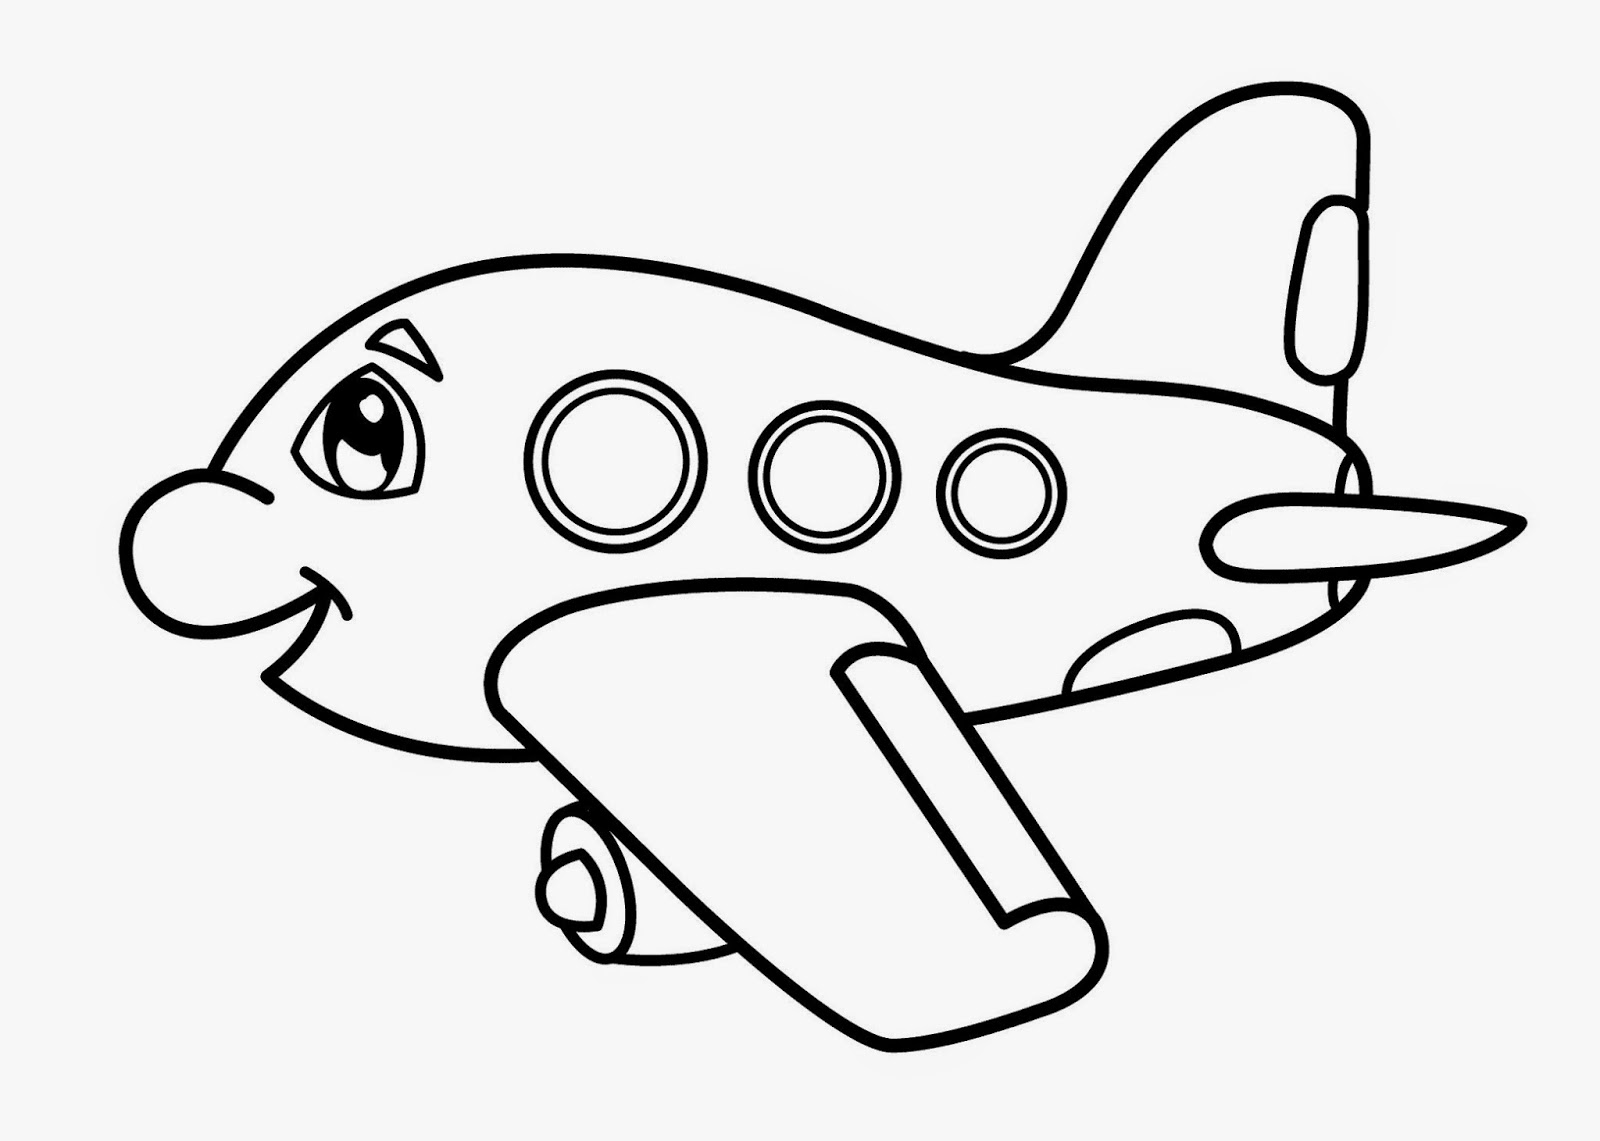 key coloring pages preschool airplanes - photo#28